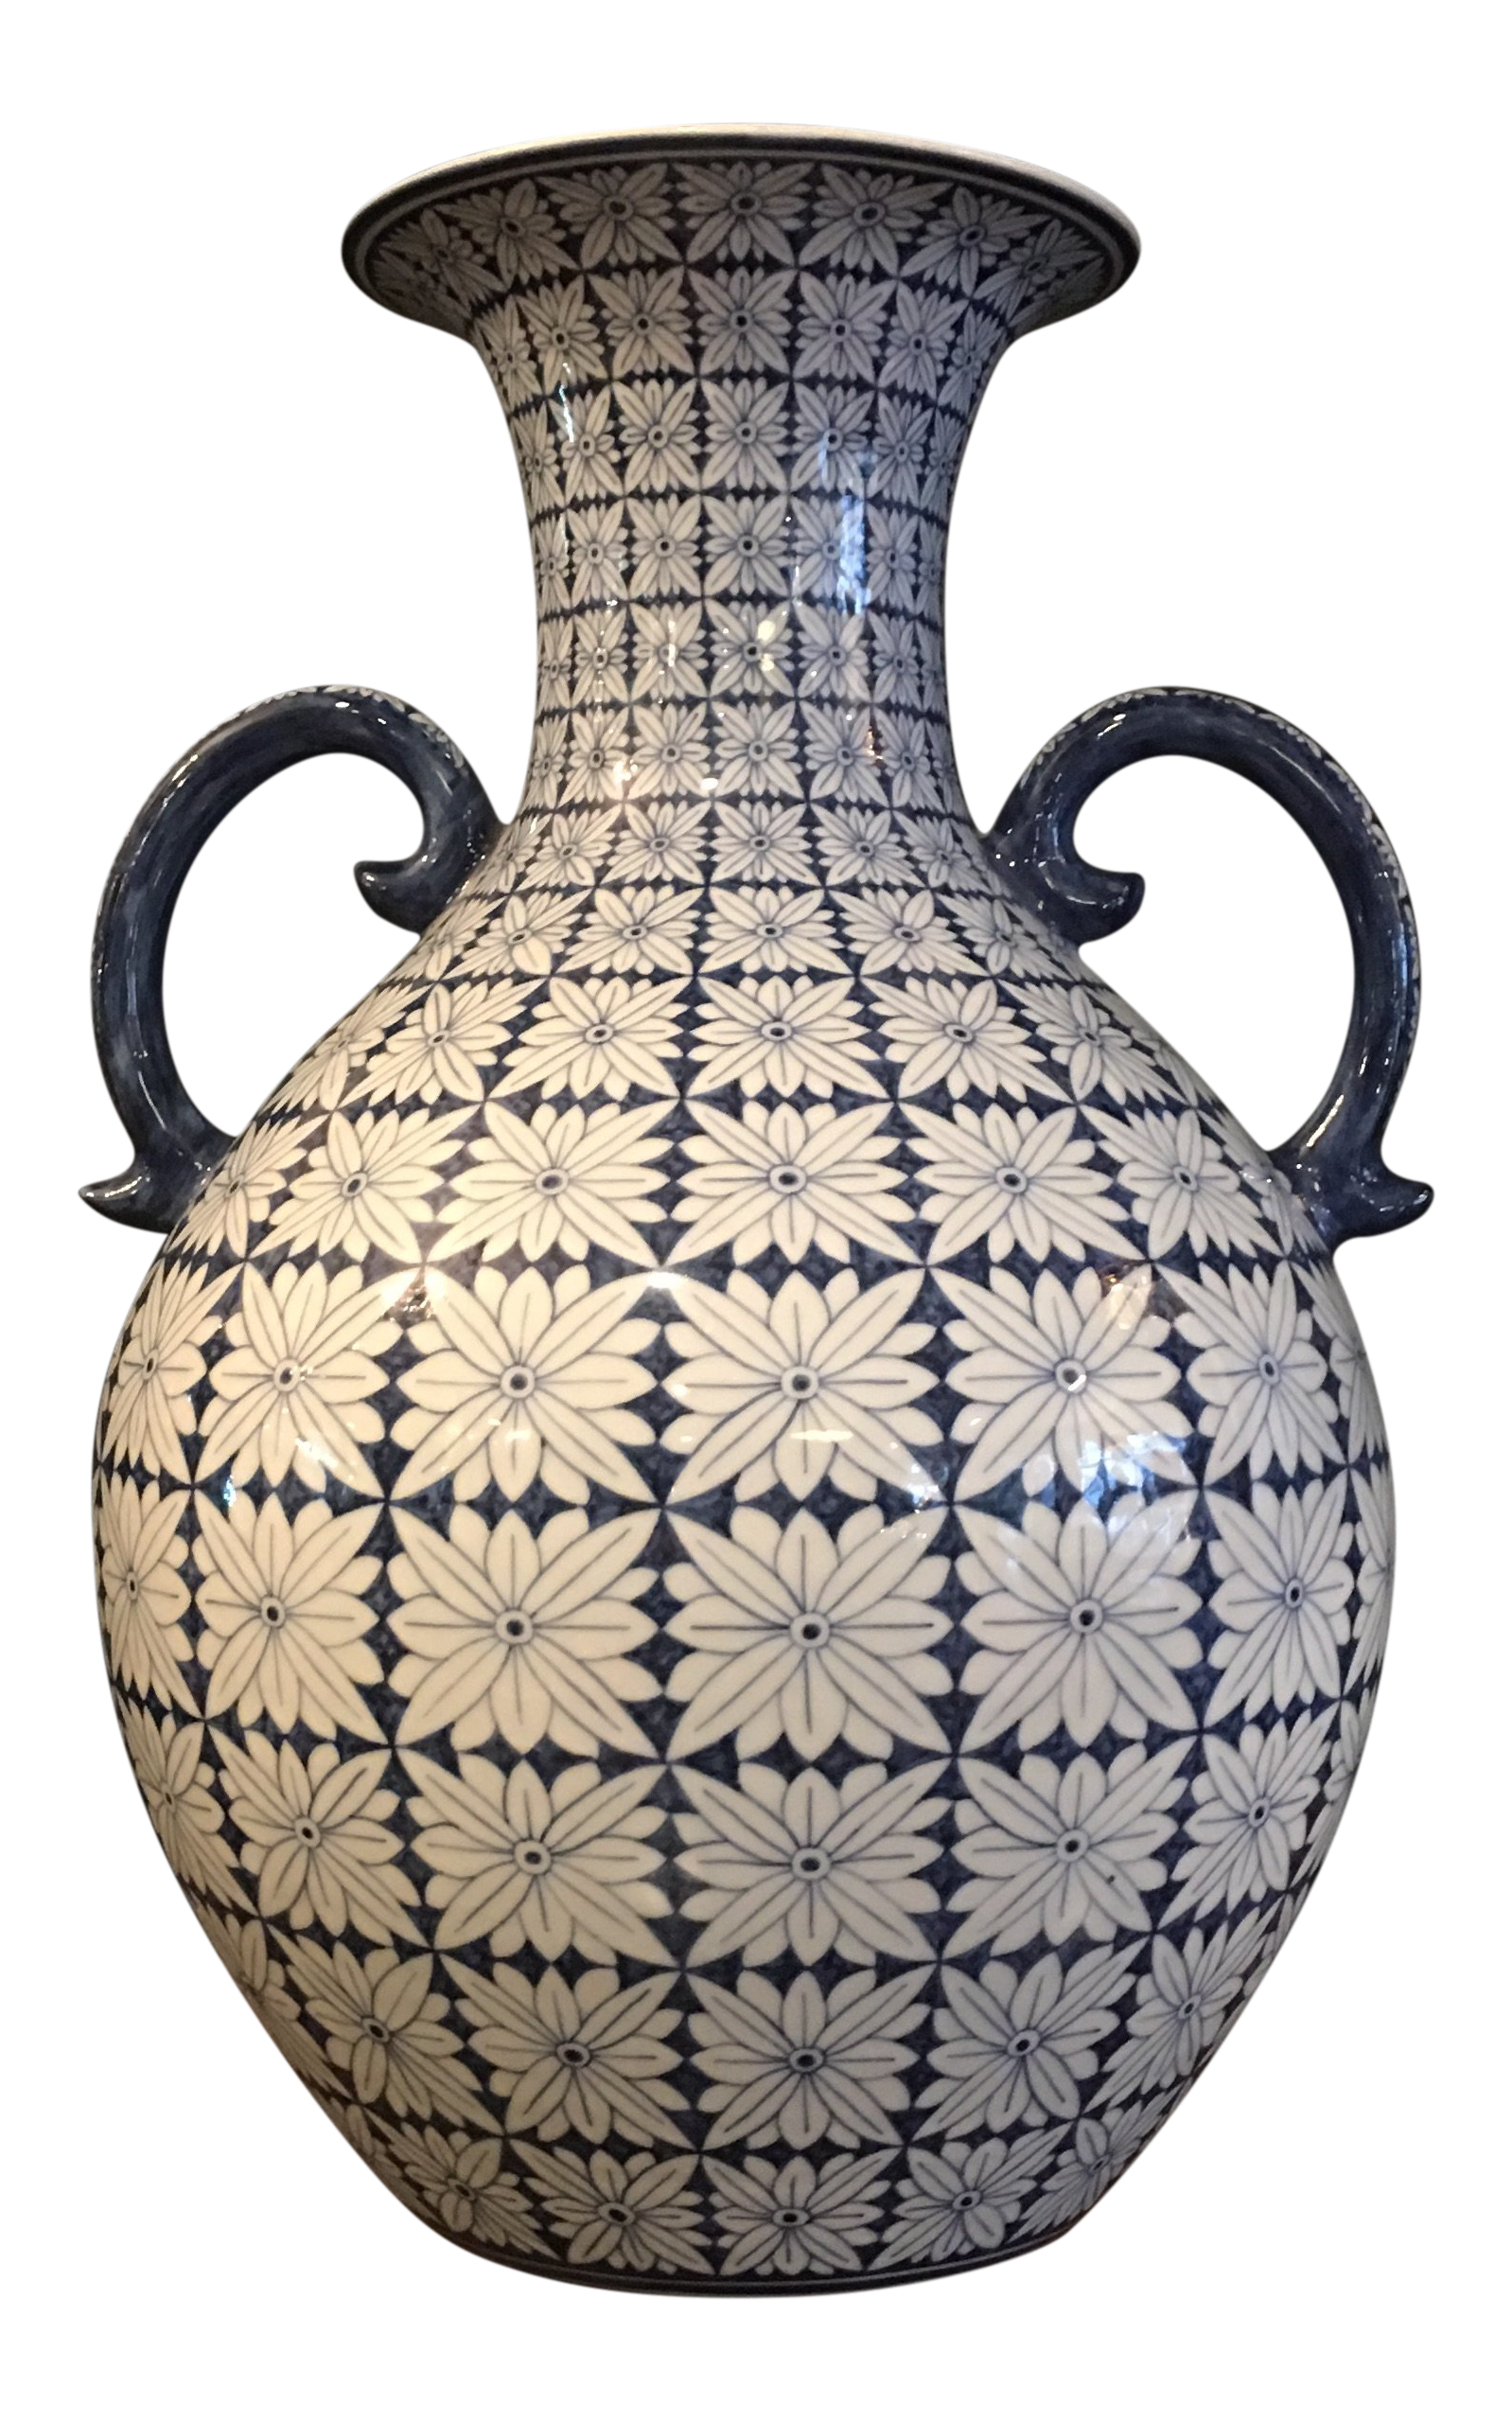 Chinese Ceramic Blue and White Pottery Vase With Handles | Chairish